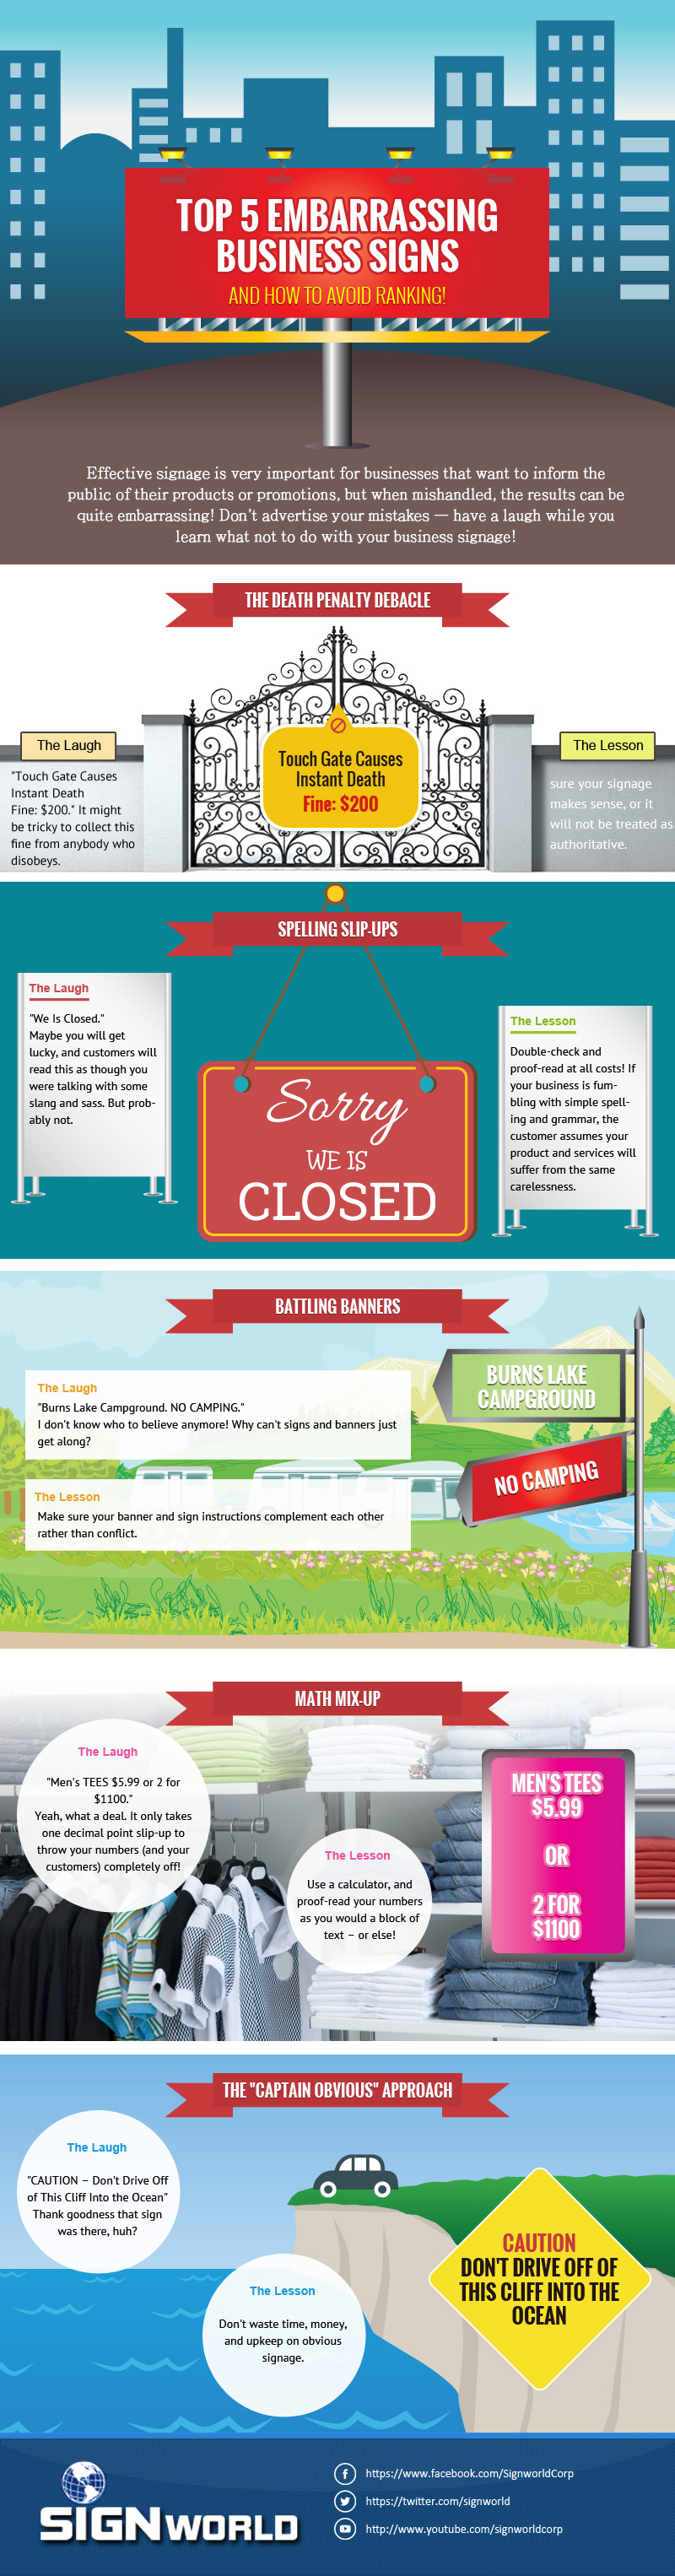 Top 5 Embarrassing Business Signs and How to Avoid Ranking!